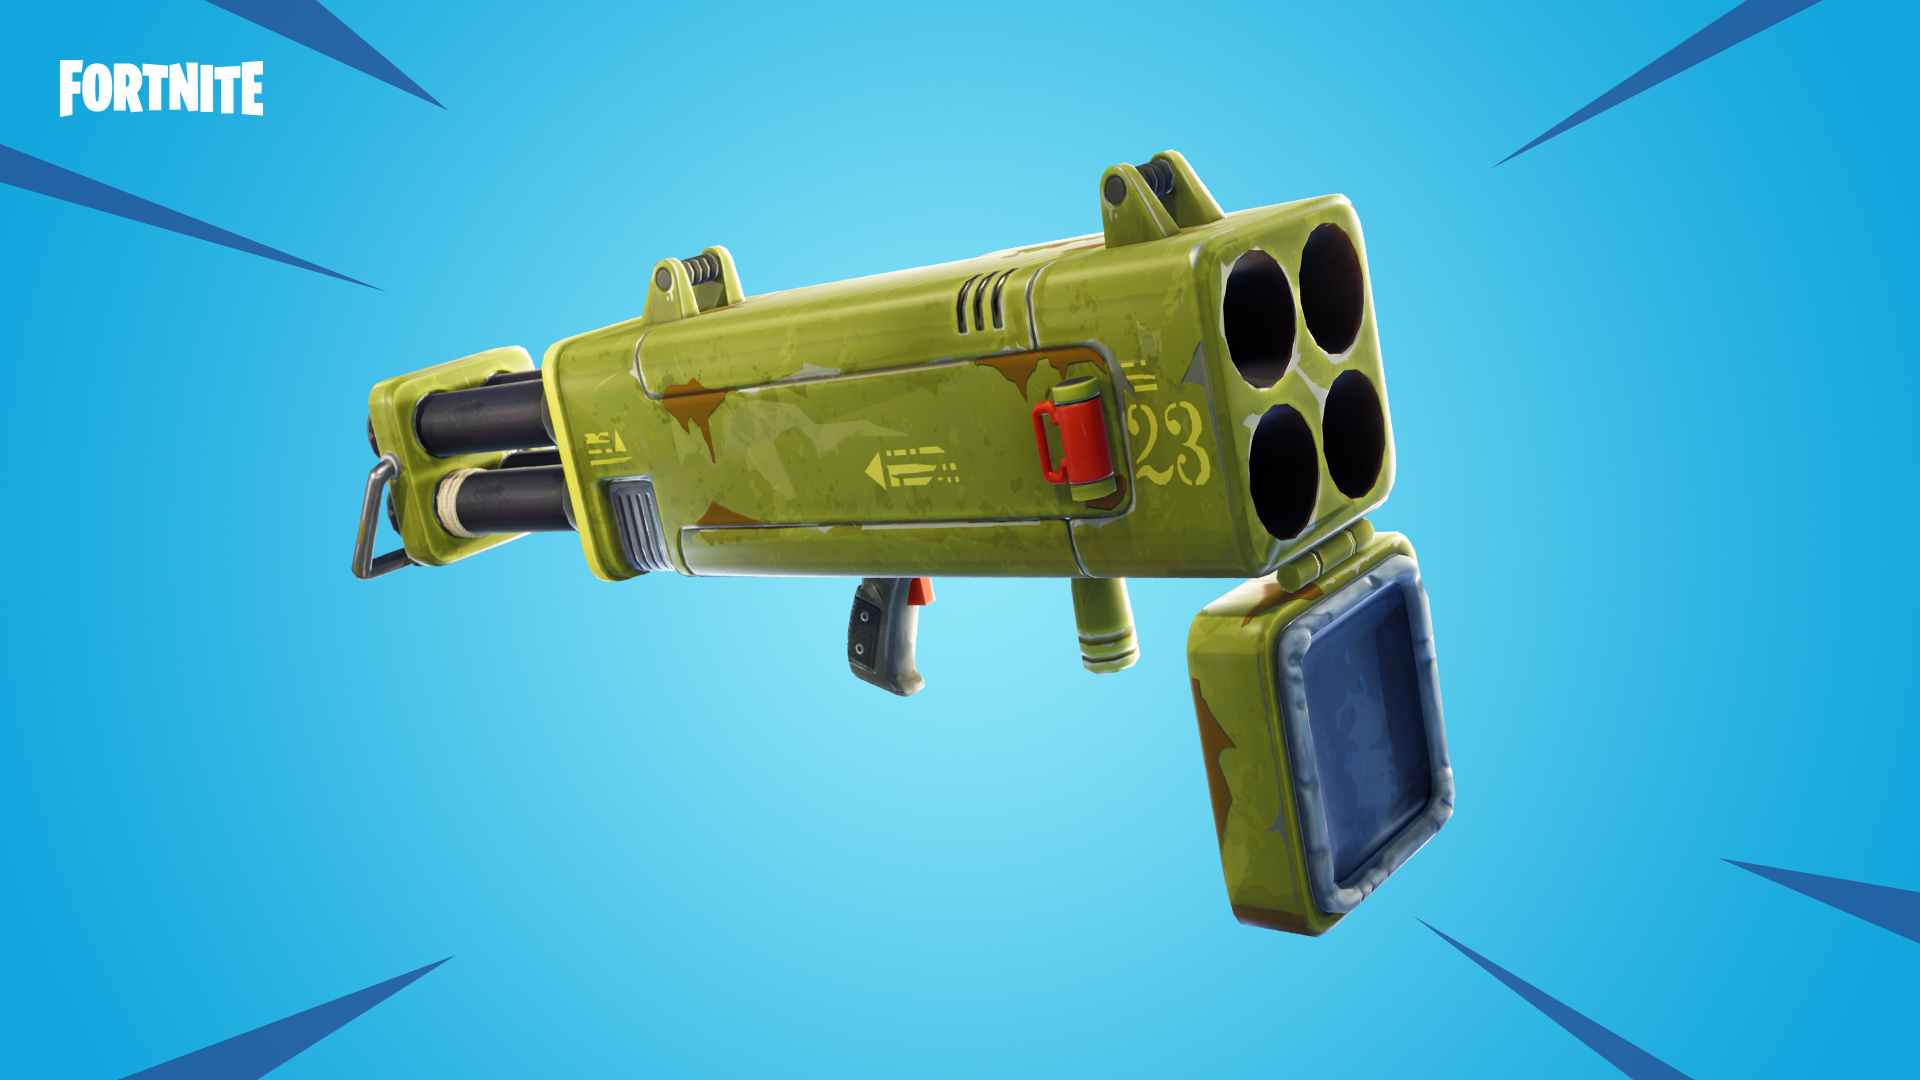 Fortnite-Vierfach-Rakete